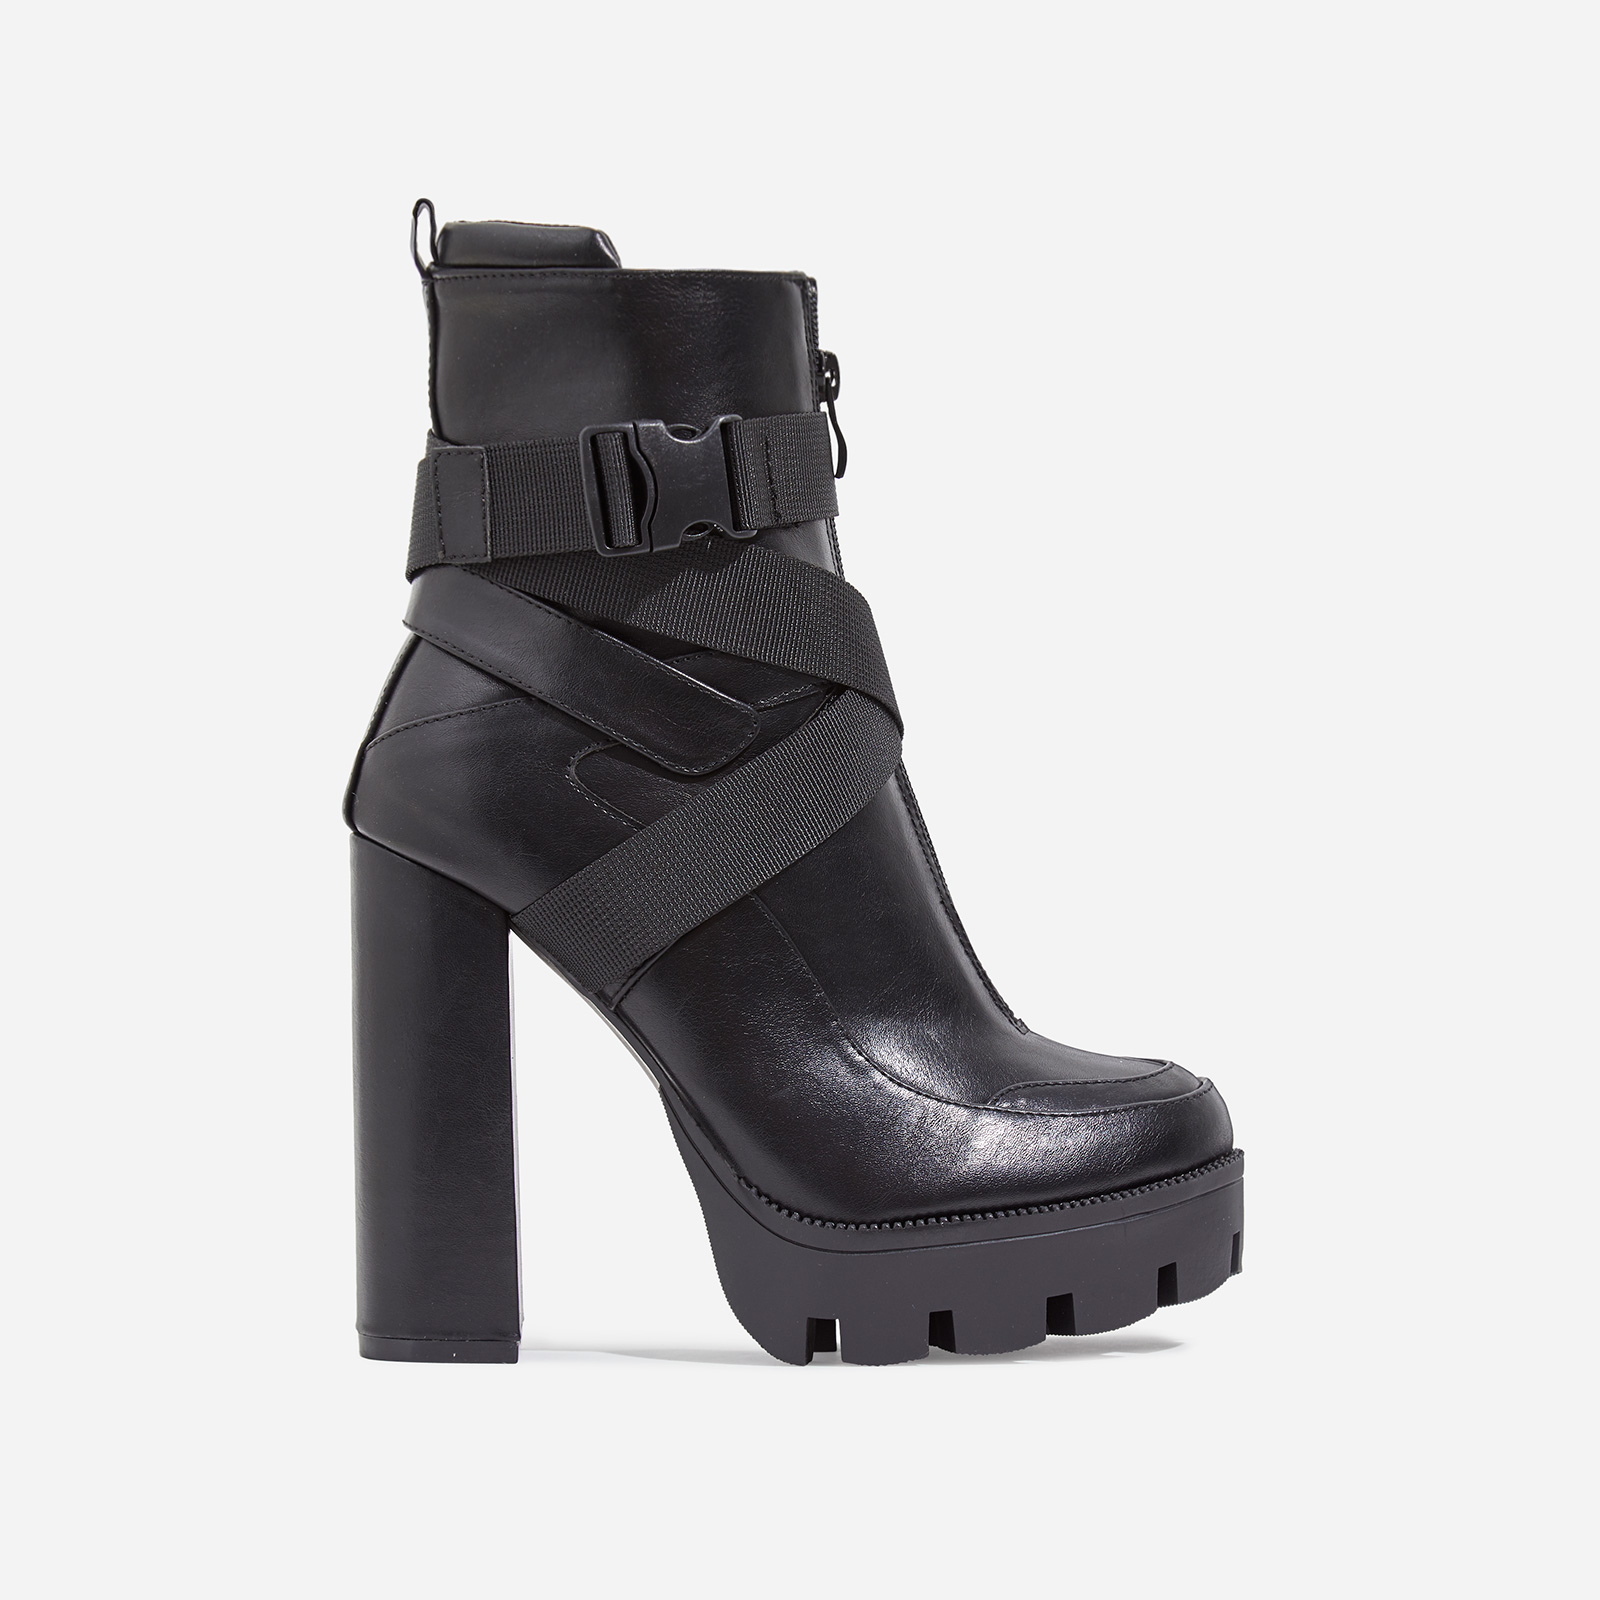 Efron Buckle Detail Platform Ankle Boot In Black Faux Leather